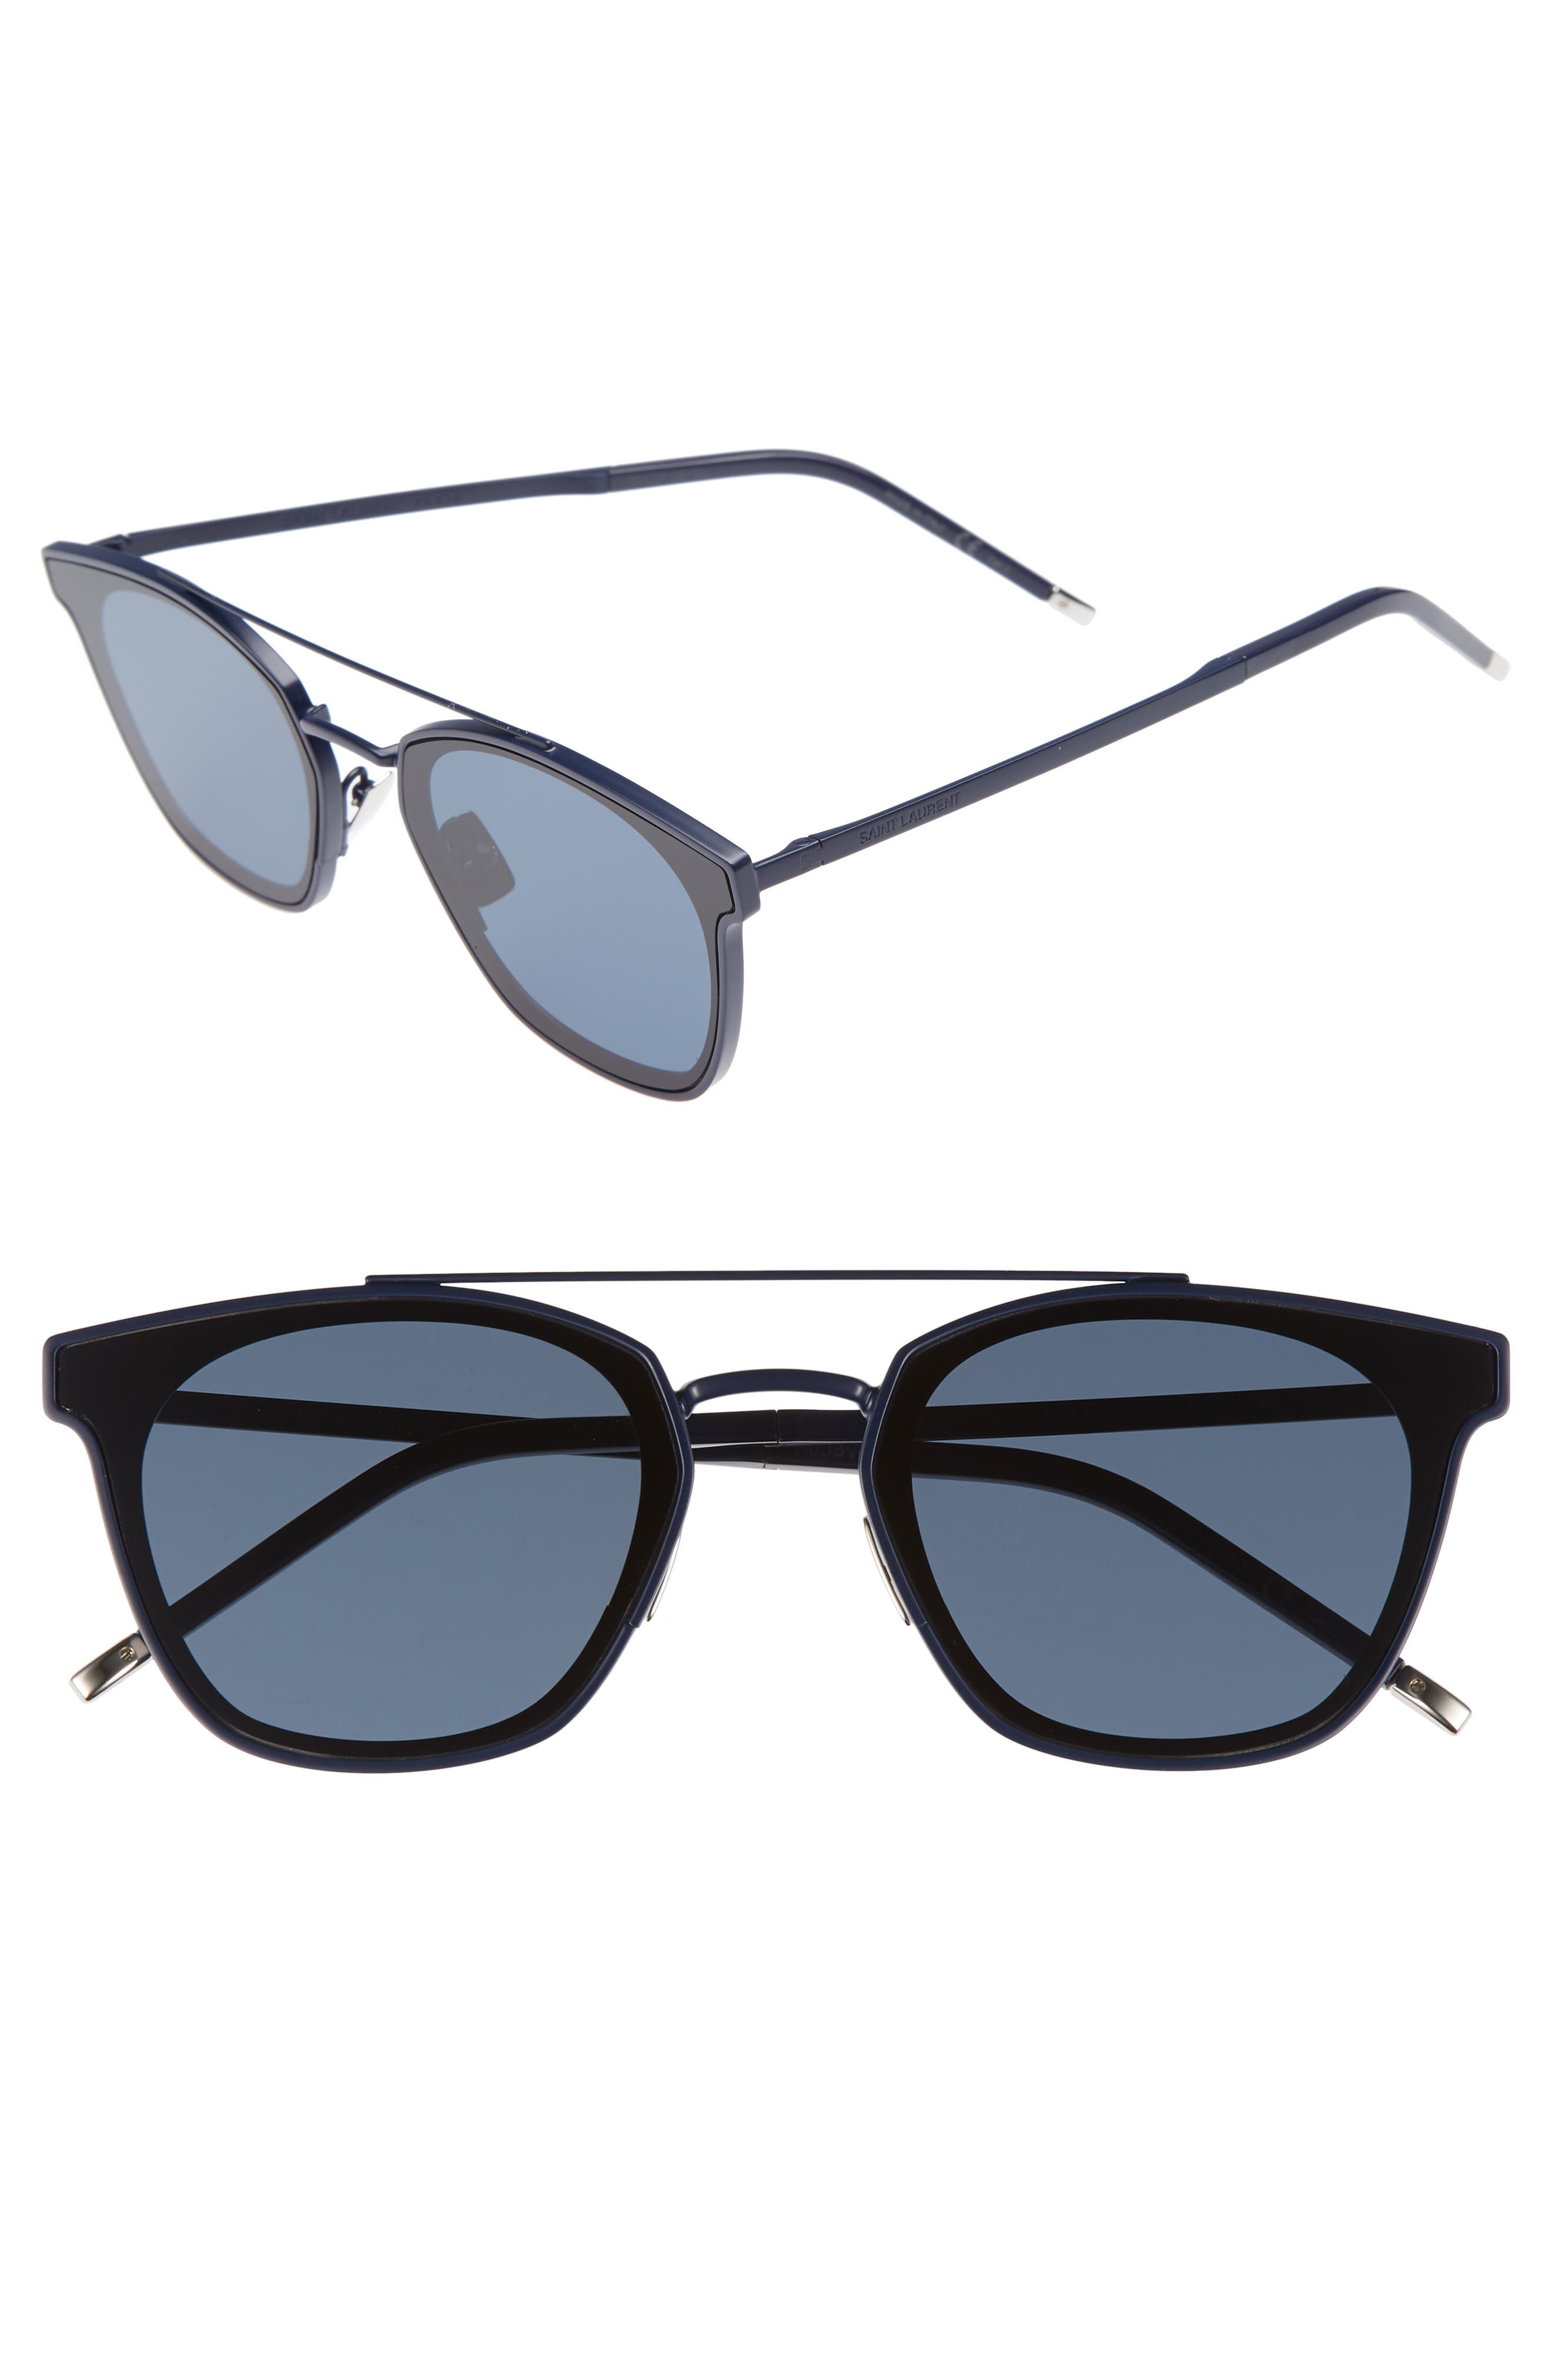 SL 28 61mm Polarized Sunglasses,                             Main thumbnail 1, color,                             Blue